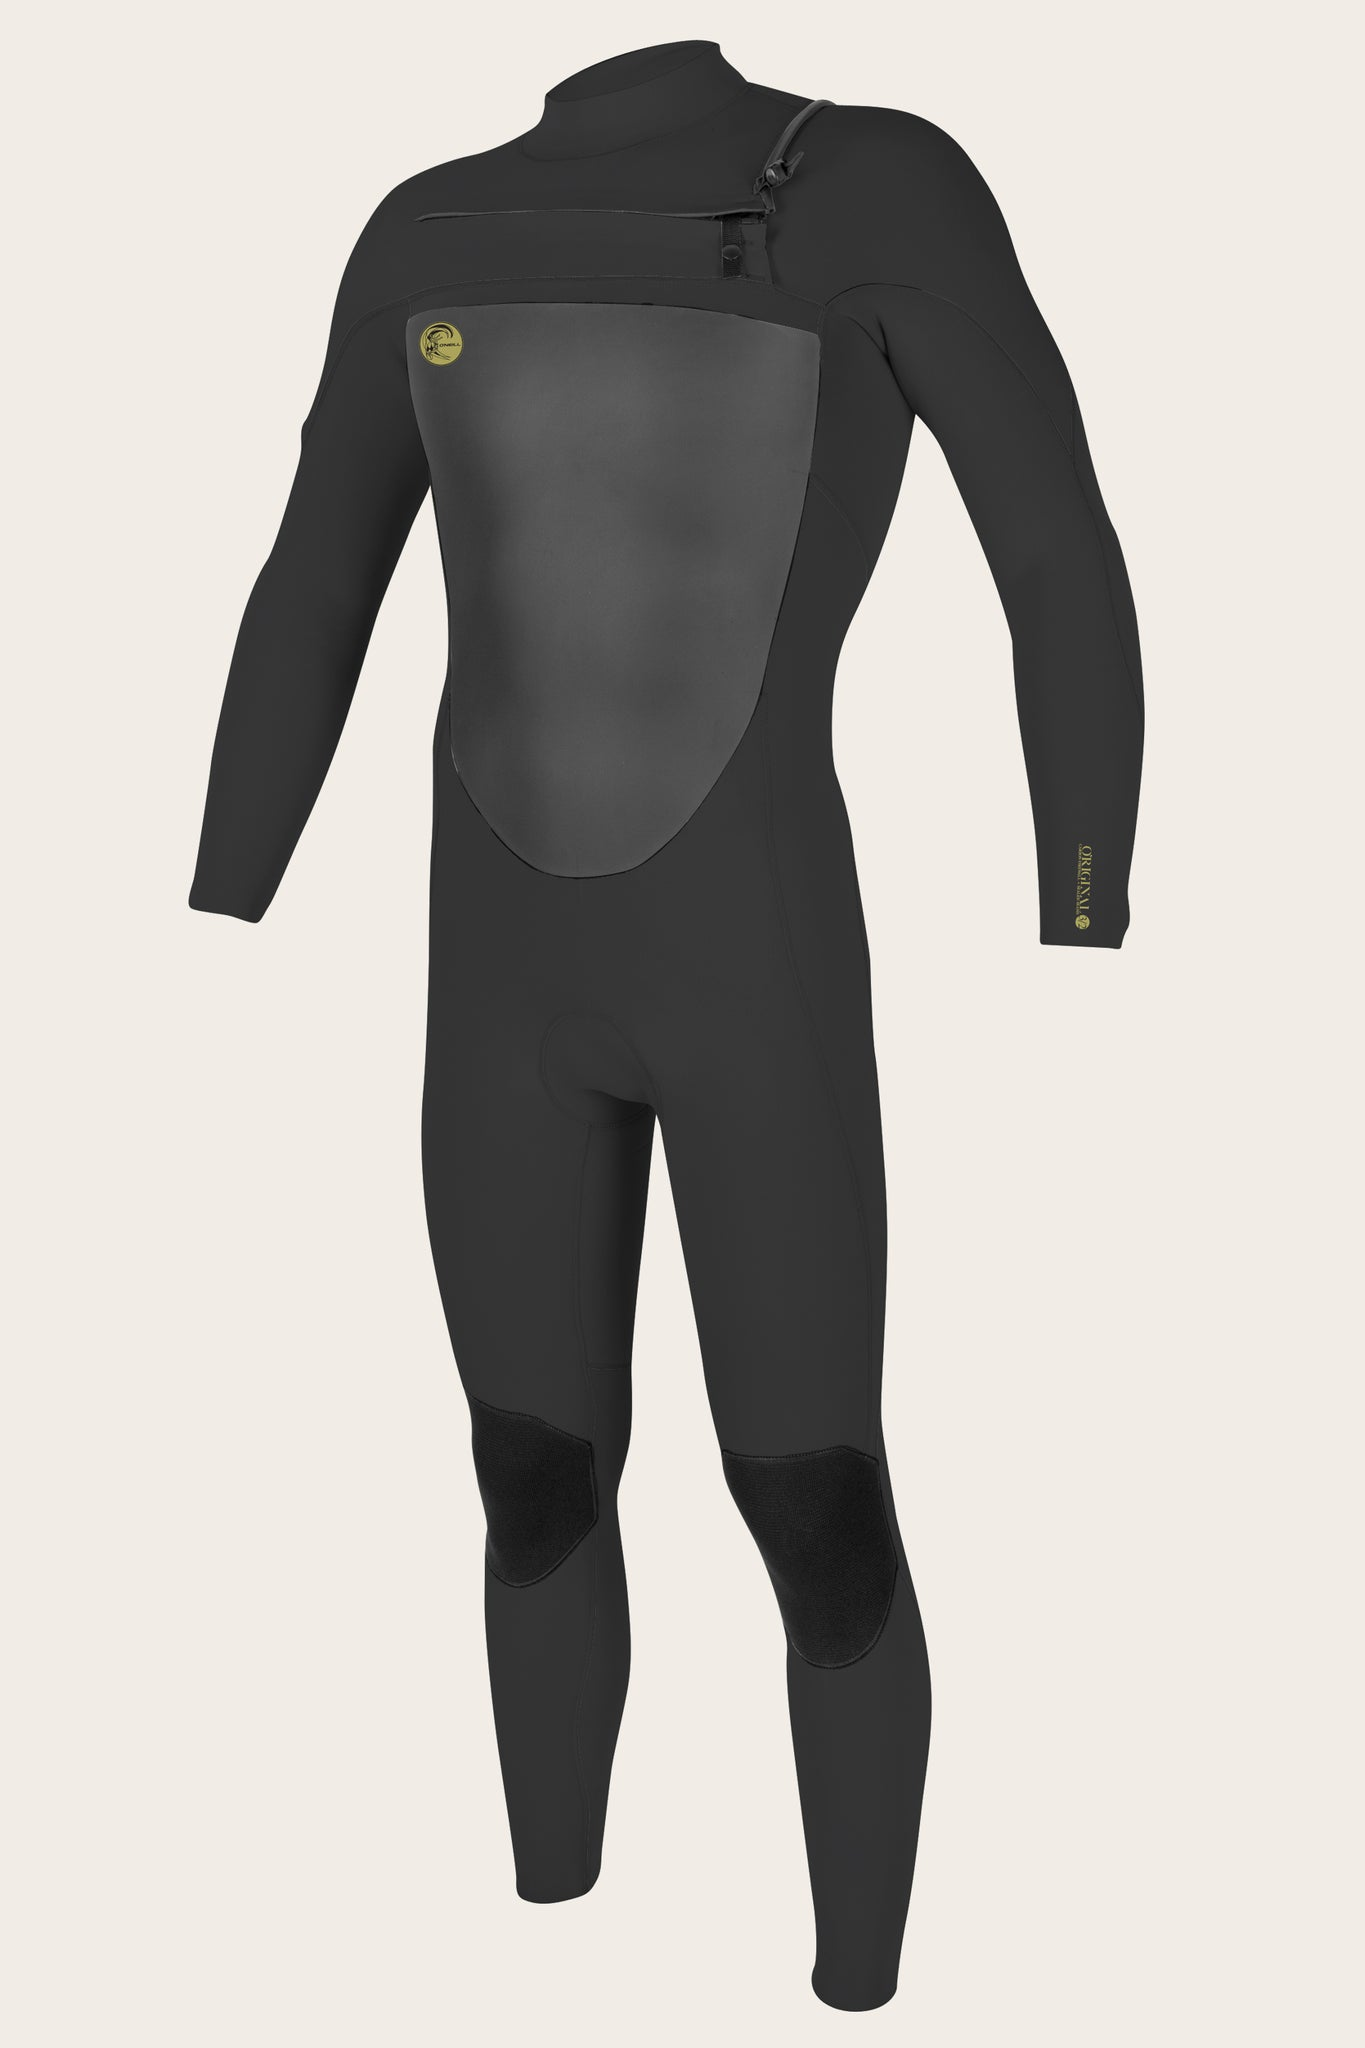 O'Riginal 3/2Mm Chest Zip Full Wetsuit - Mniteoil/Mniteoil | O'Neill